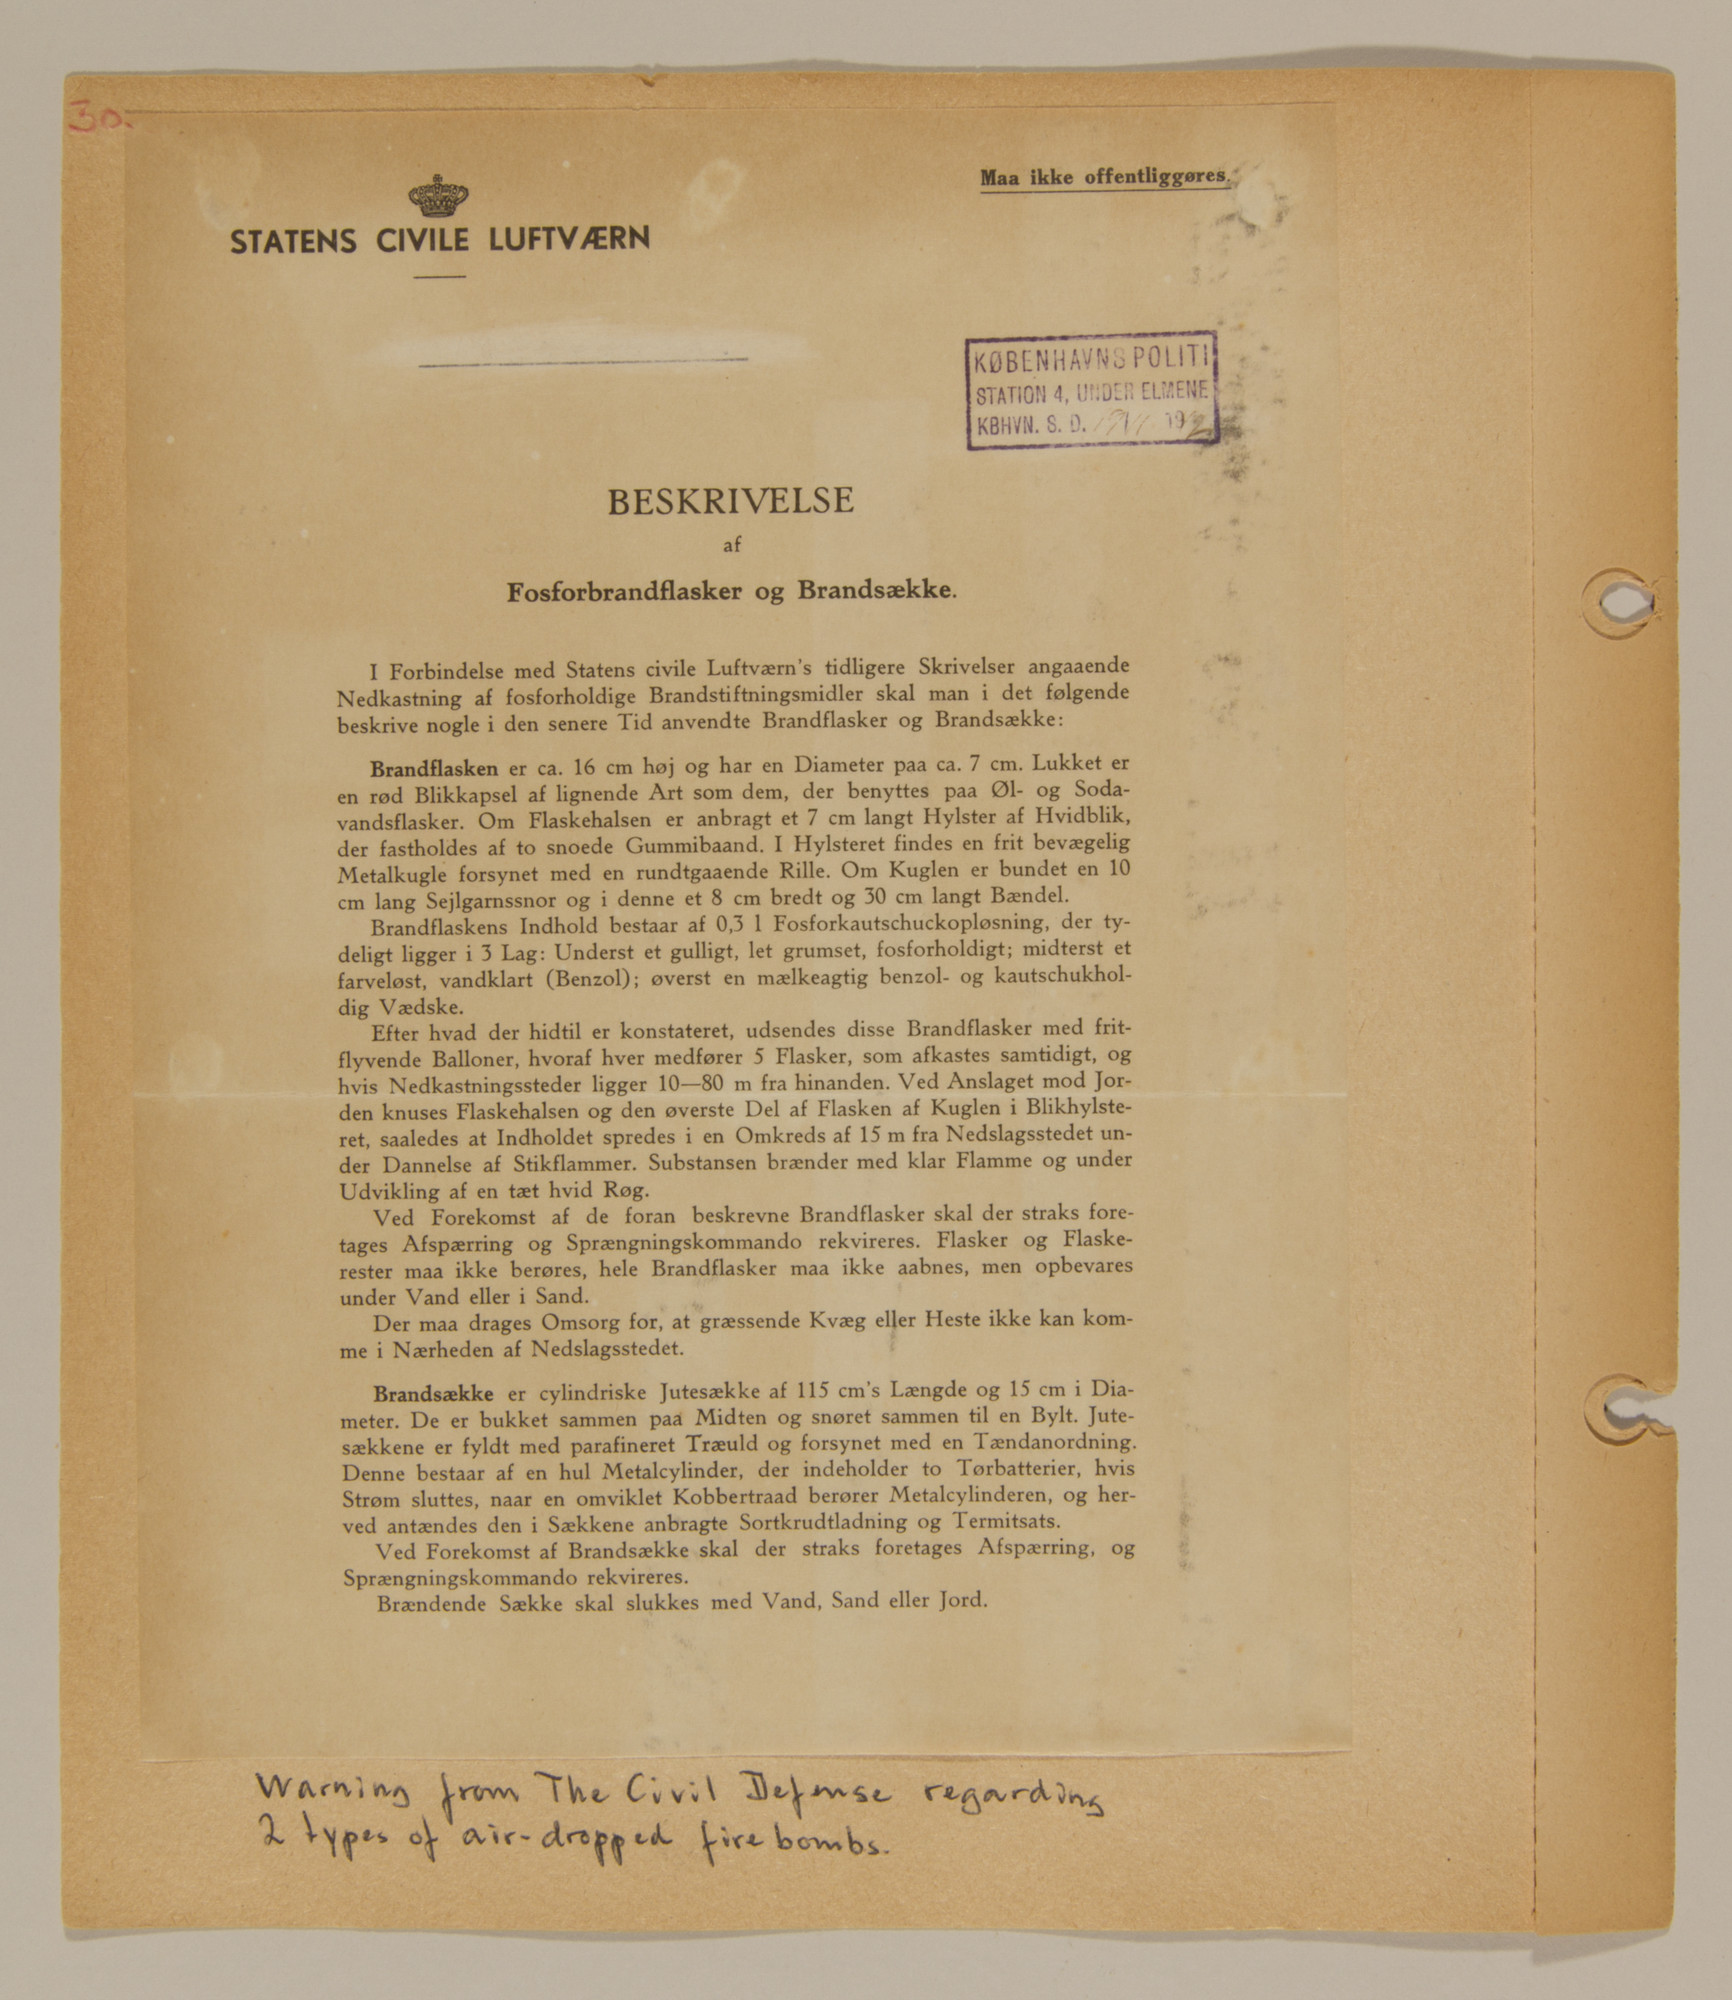 Page from volume one of a set of scrapbooks compiled by Bjorn Sibbern, a Danish policeman and resistance member, documenting the German occupation of Denmark.  This page has a document from the Civil Defense regarding fire-bombs.